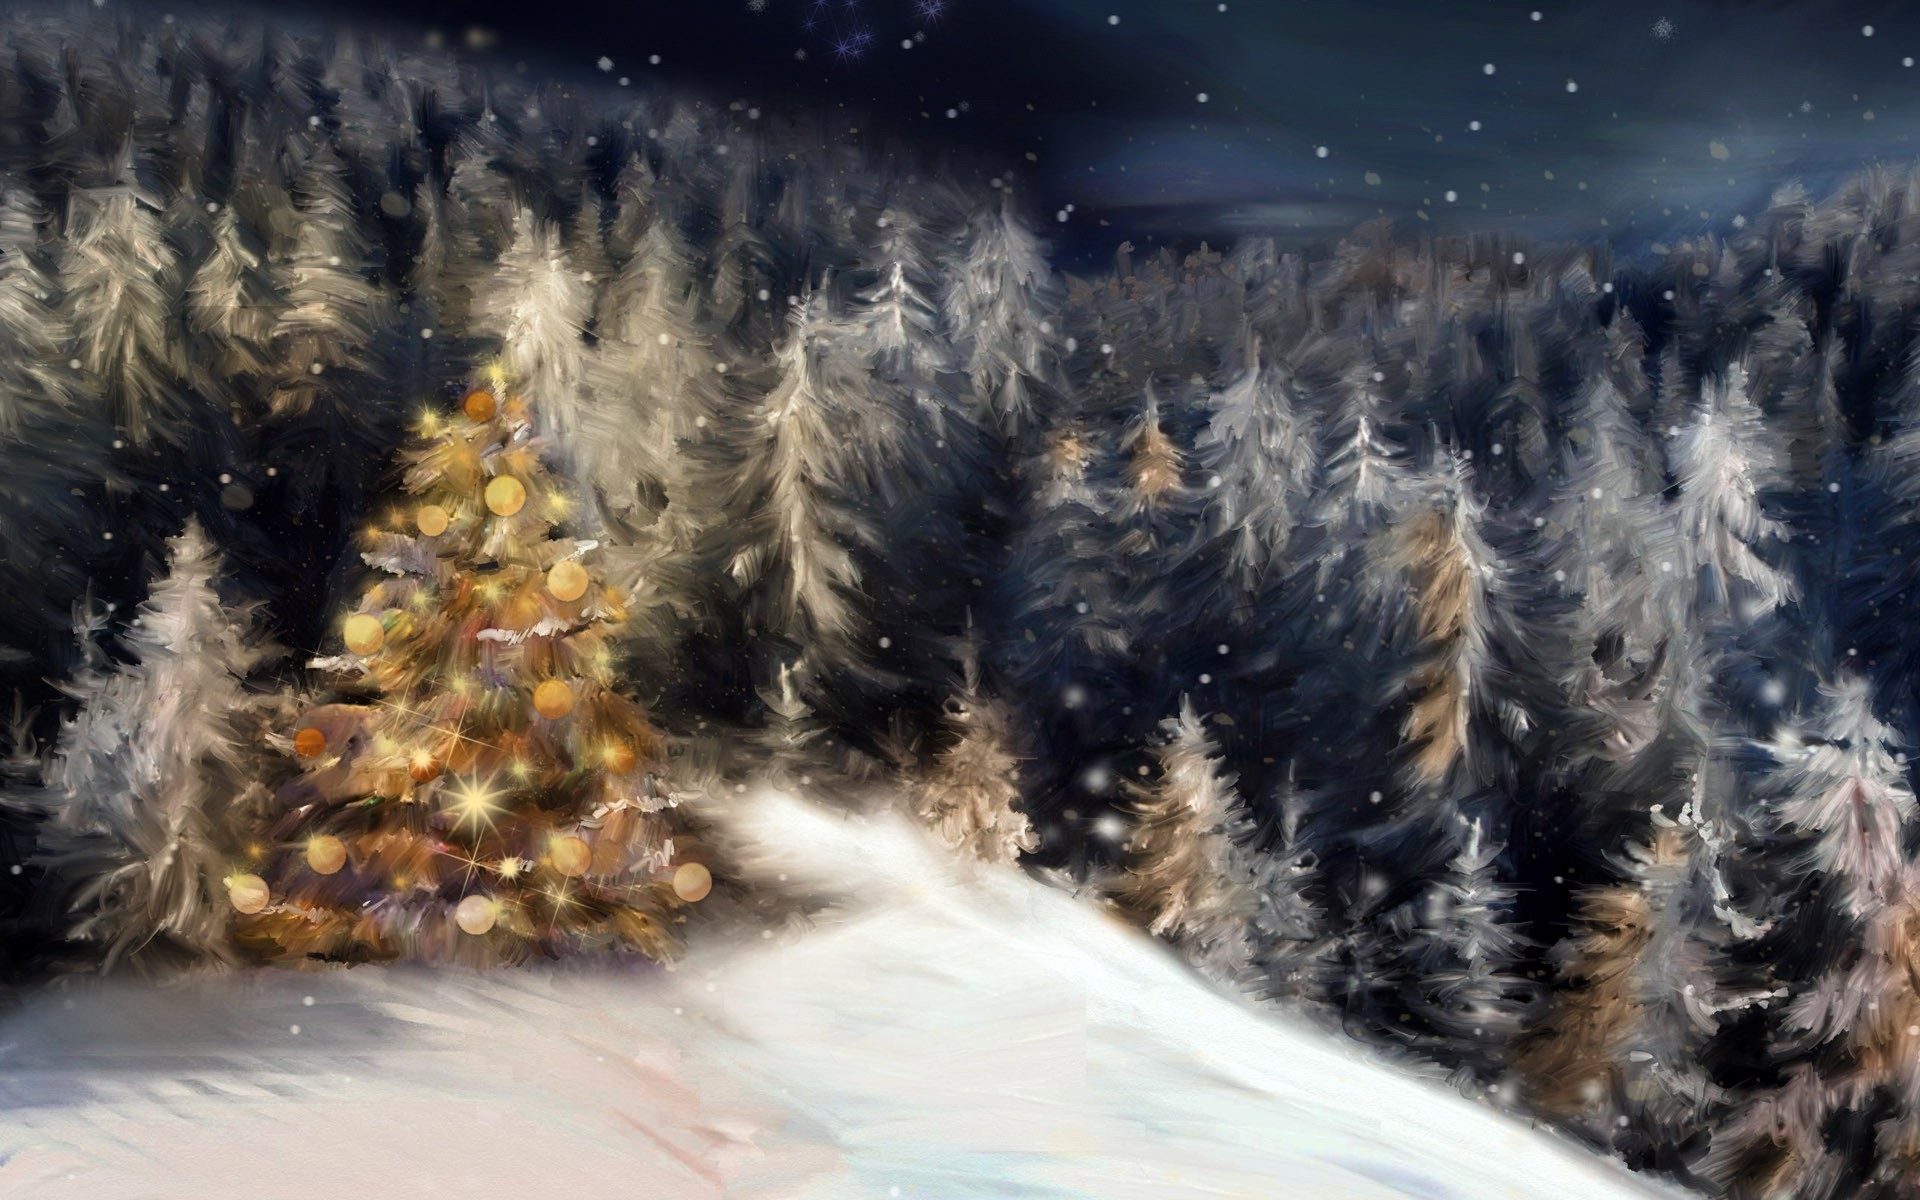 1920x1200 ... hd wallpaper · holidays, painting, Christmas, night, forest, pines, snow,  winter,